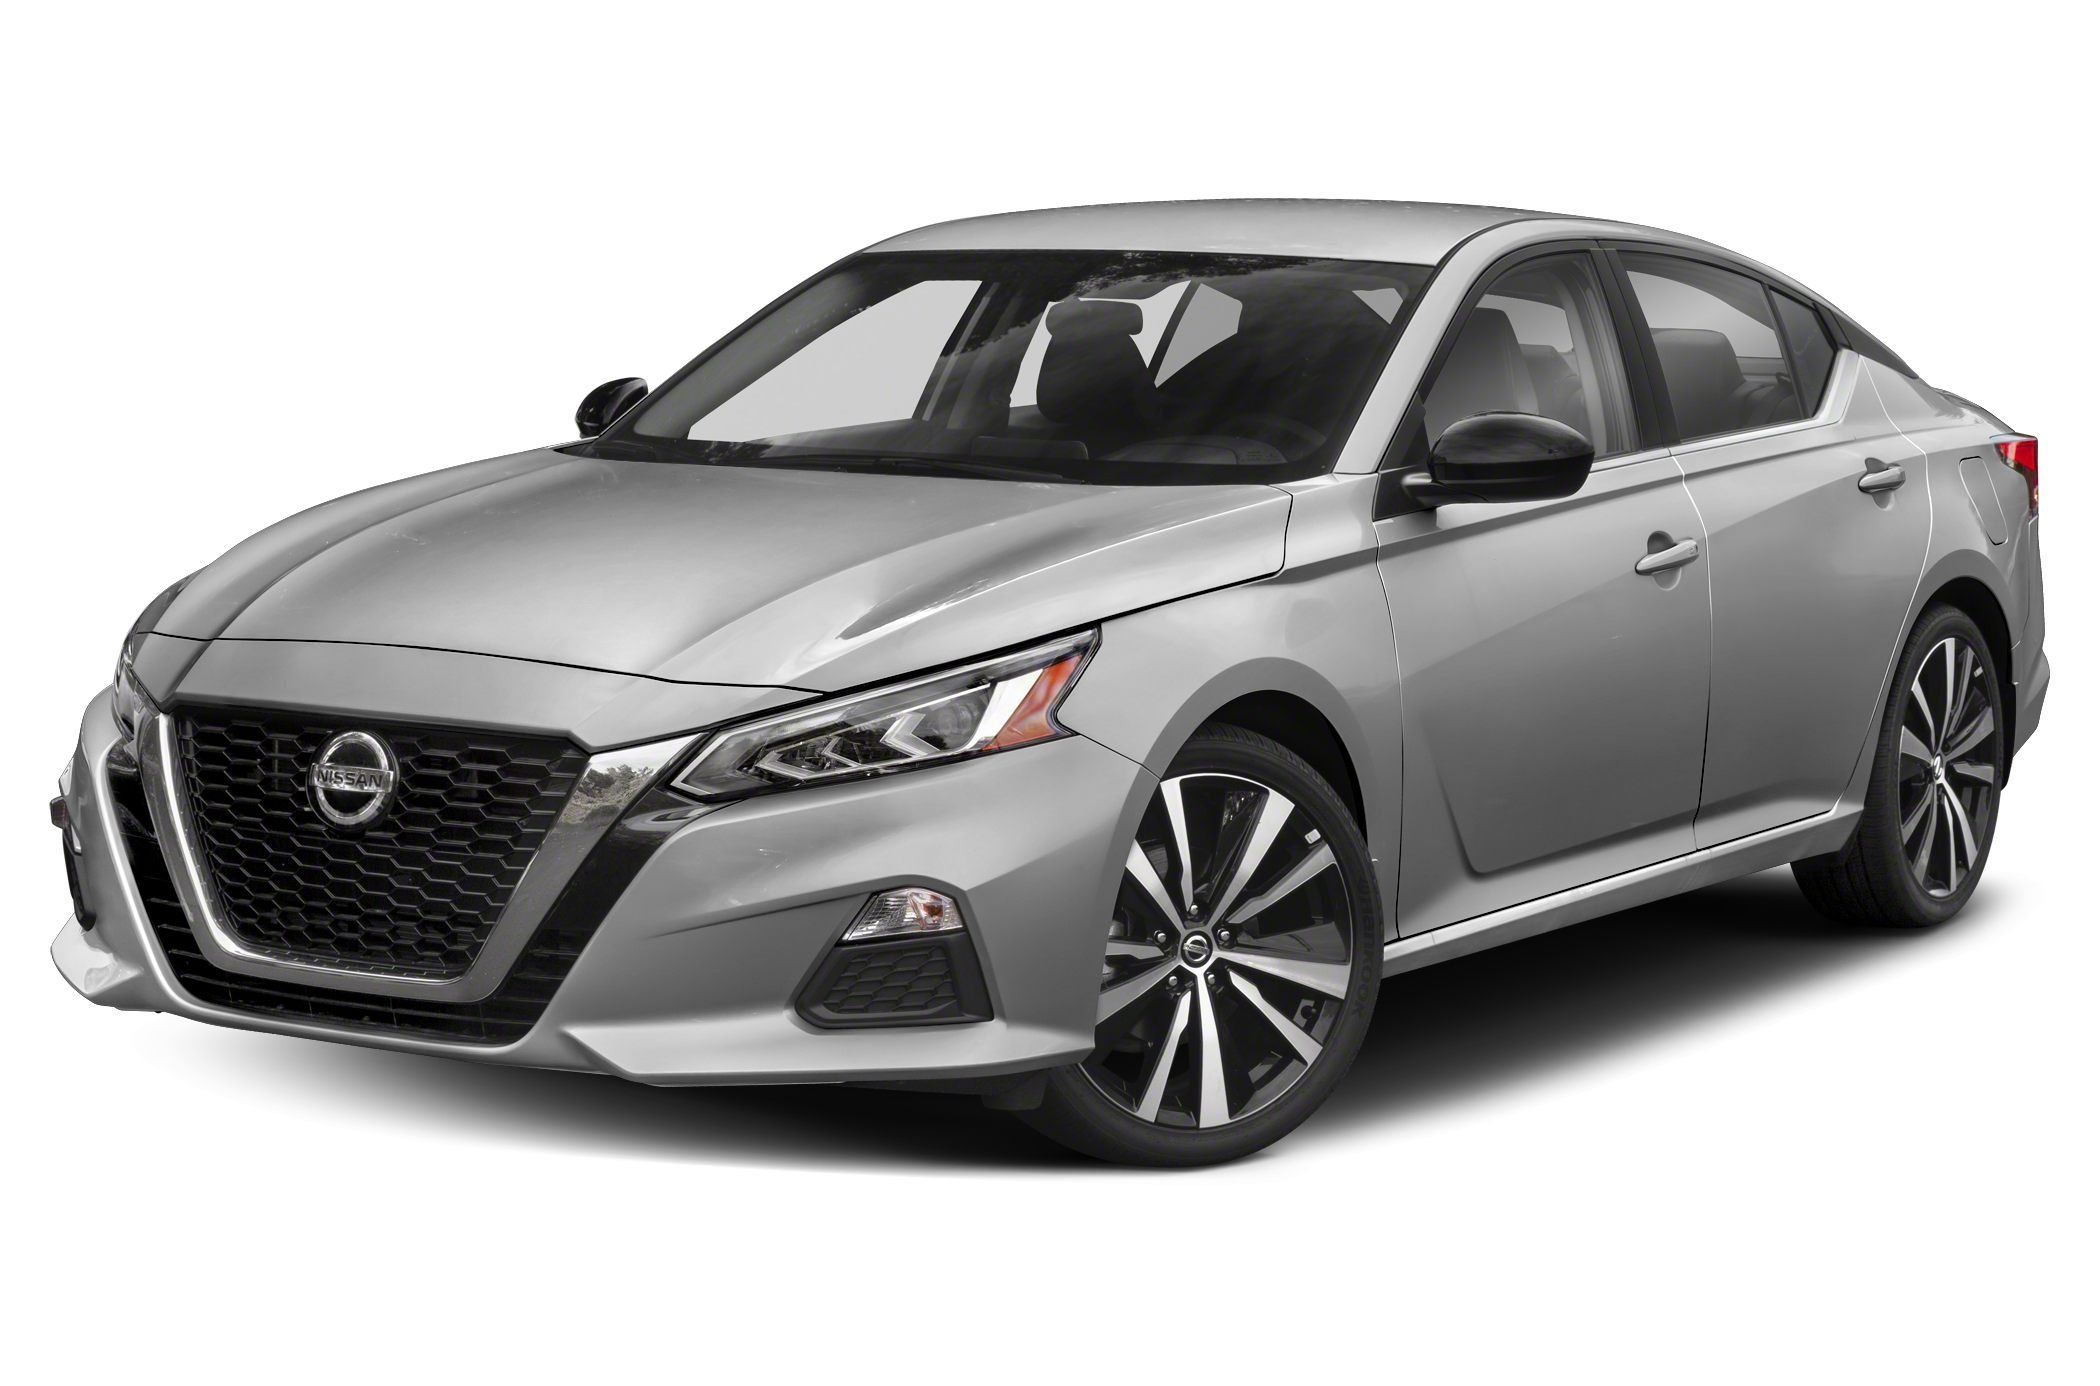 2021 Nissan Altima Coupe Price and Release Date in 2020